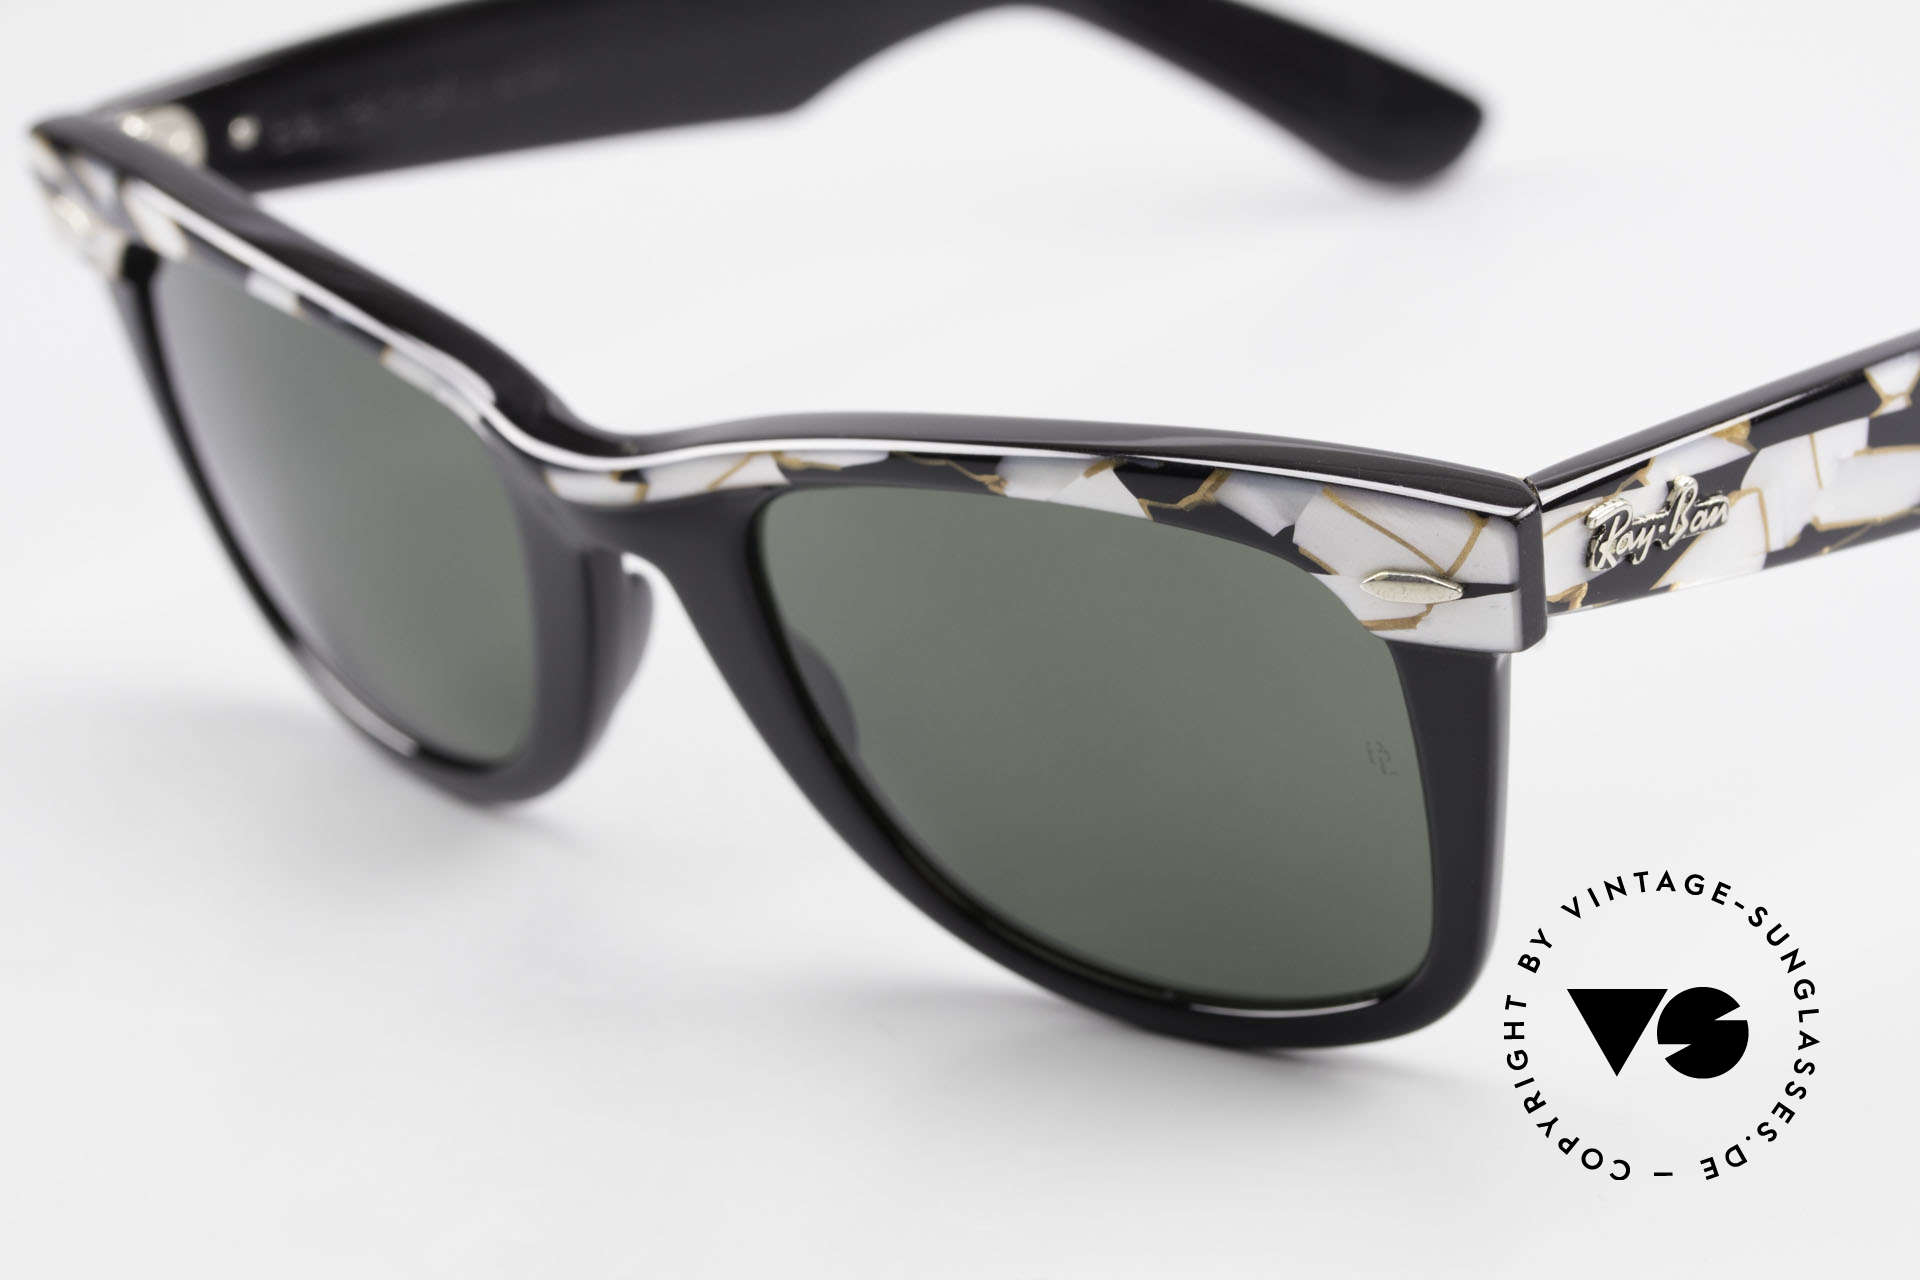 Ray Ban Wayfarer I Original Mosaic Wayfarer 80's, never worn (like all our old B&L RAY-BAN shades), Made for Men and Women